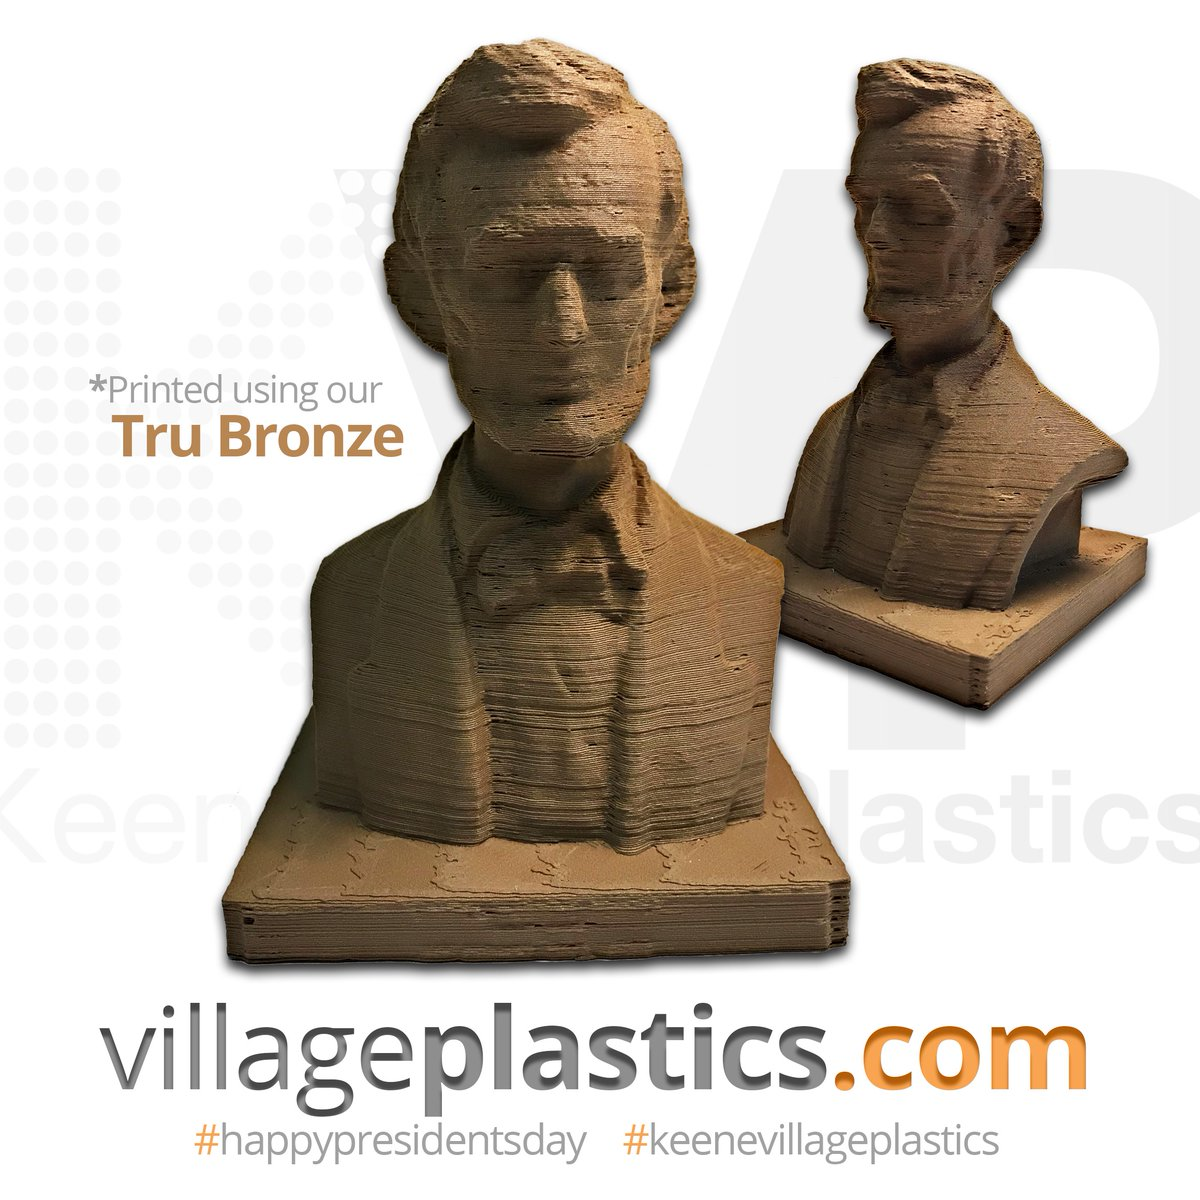 What better way to celebrate #PresidentsDay than with a 3D-printed bust of #HonestAbe??? 🇺🇸 • • • • #3dprinting  #3dfilament #art #3dprints #tech #design #3dart #3ddesign #filament #makeshaper #technology #techsale #filaments #trubronze #abrahamlincoln